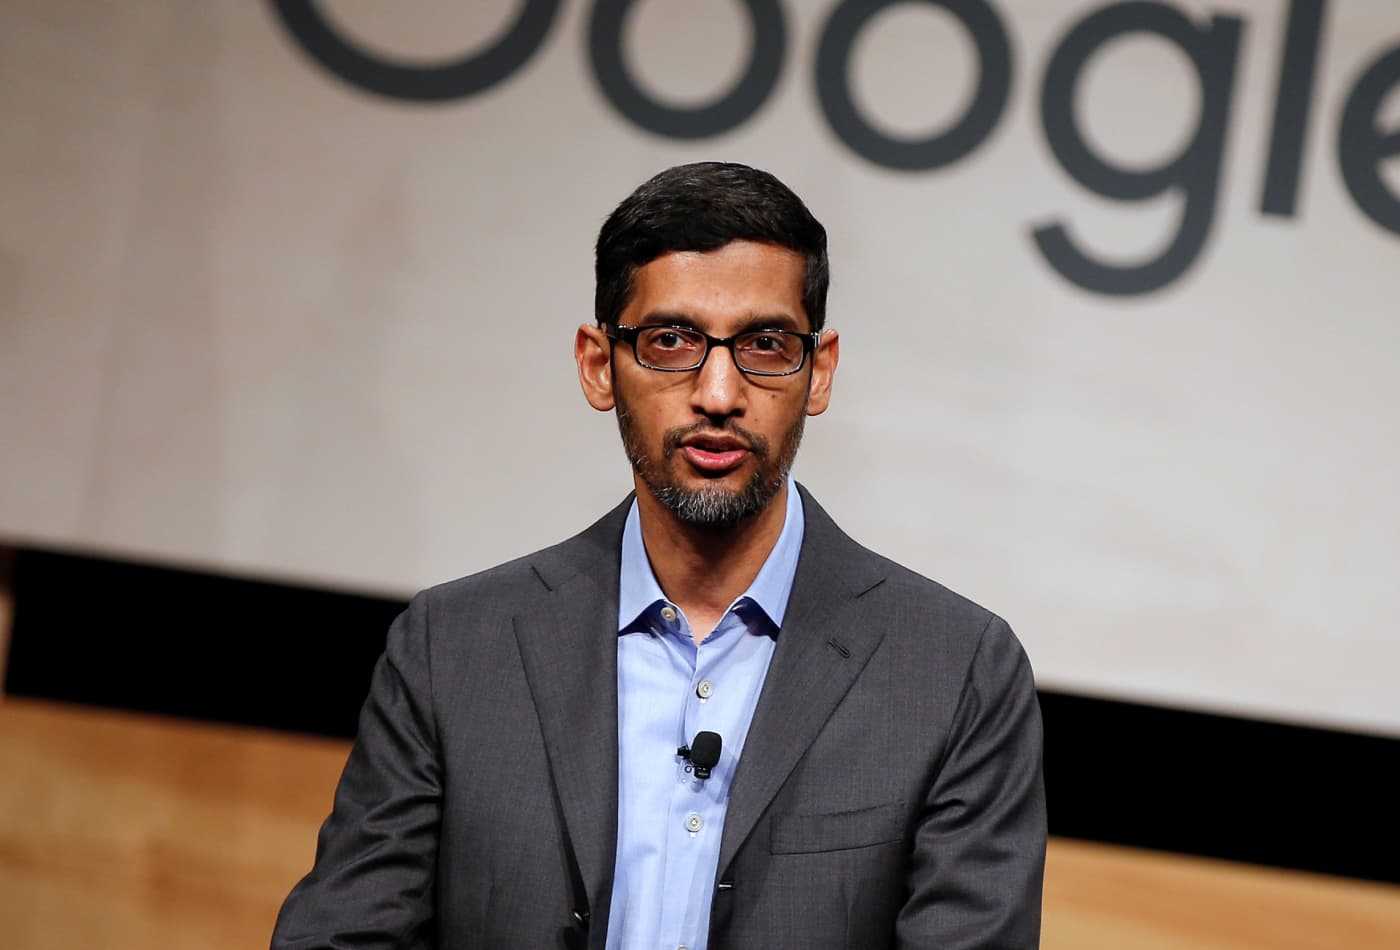 Google CEO tells employees return to office won't happen until at least June 1